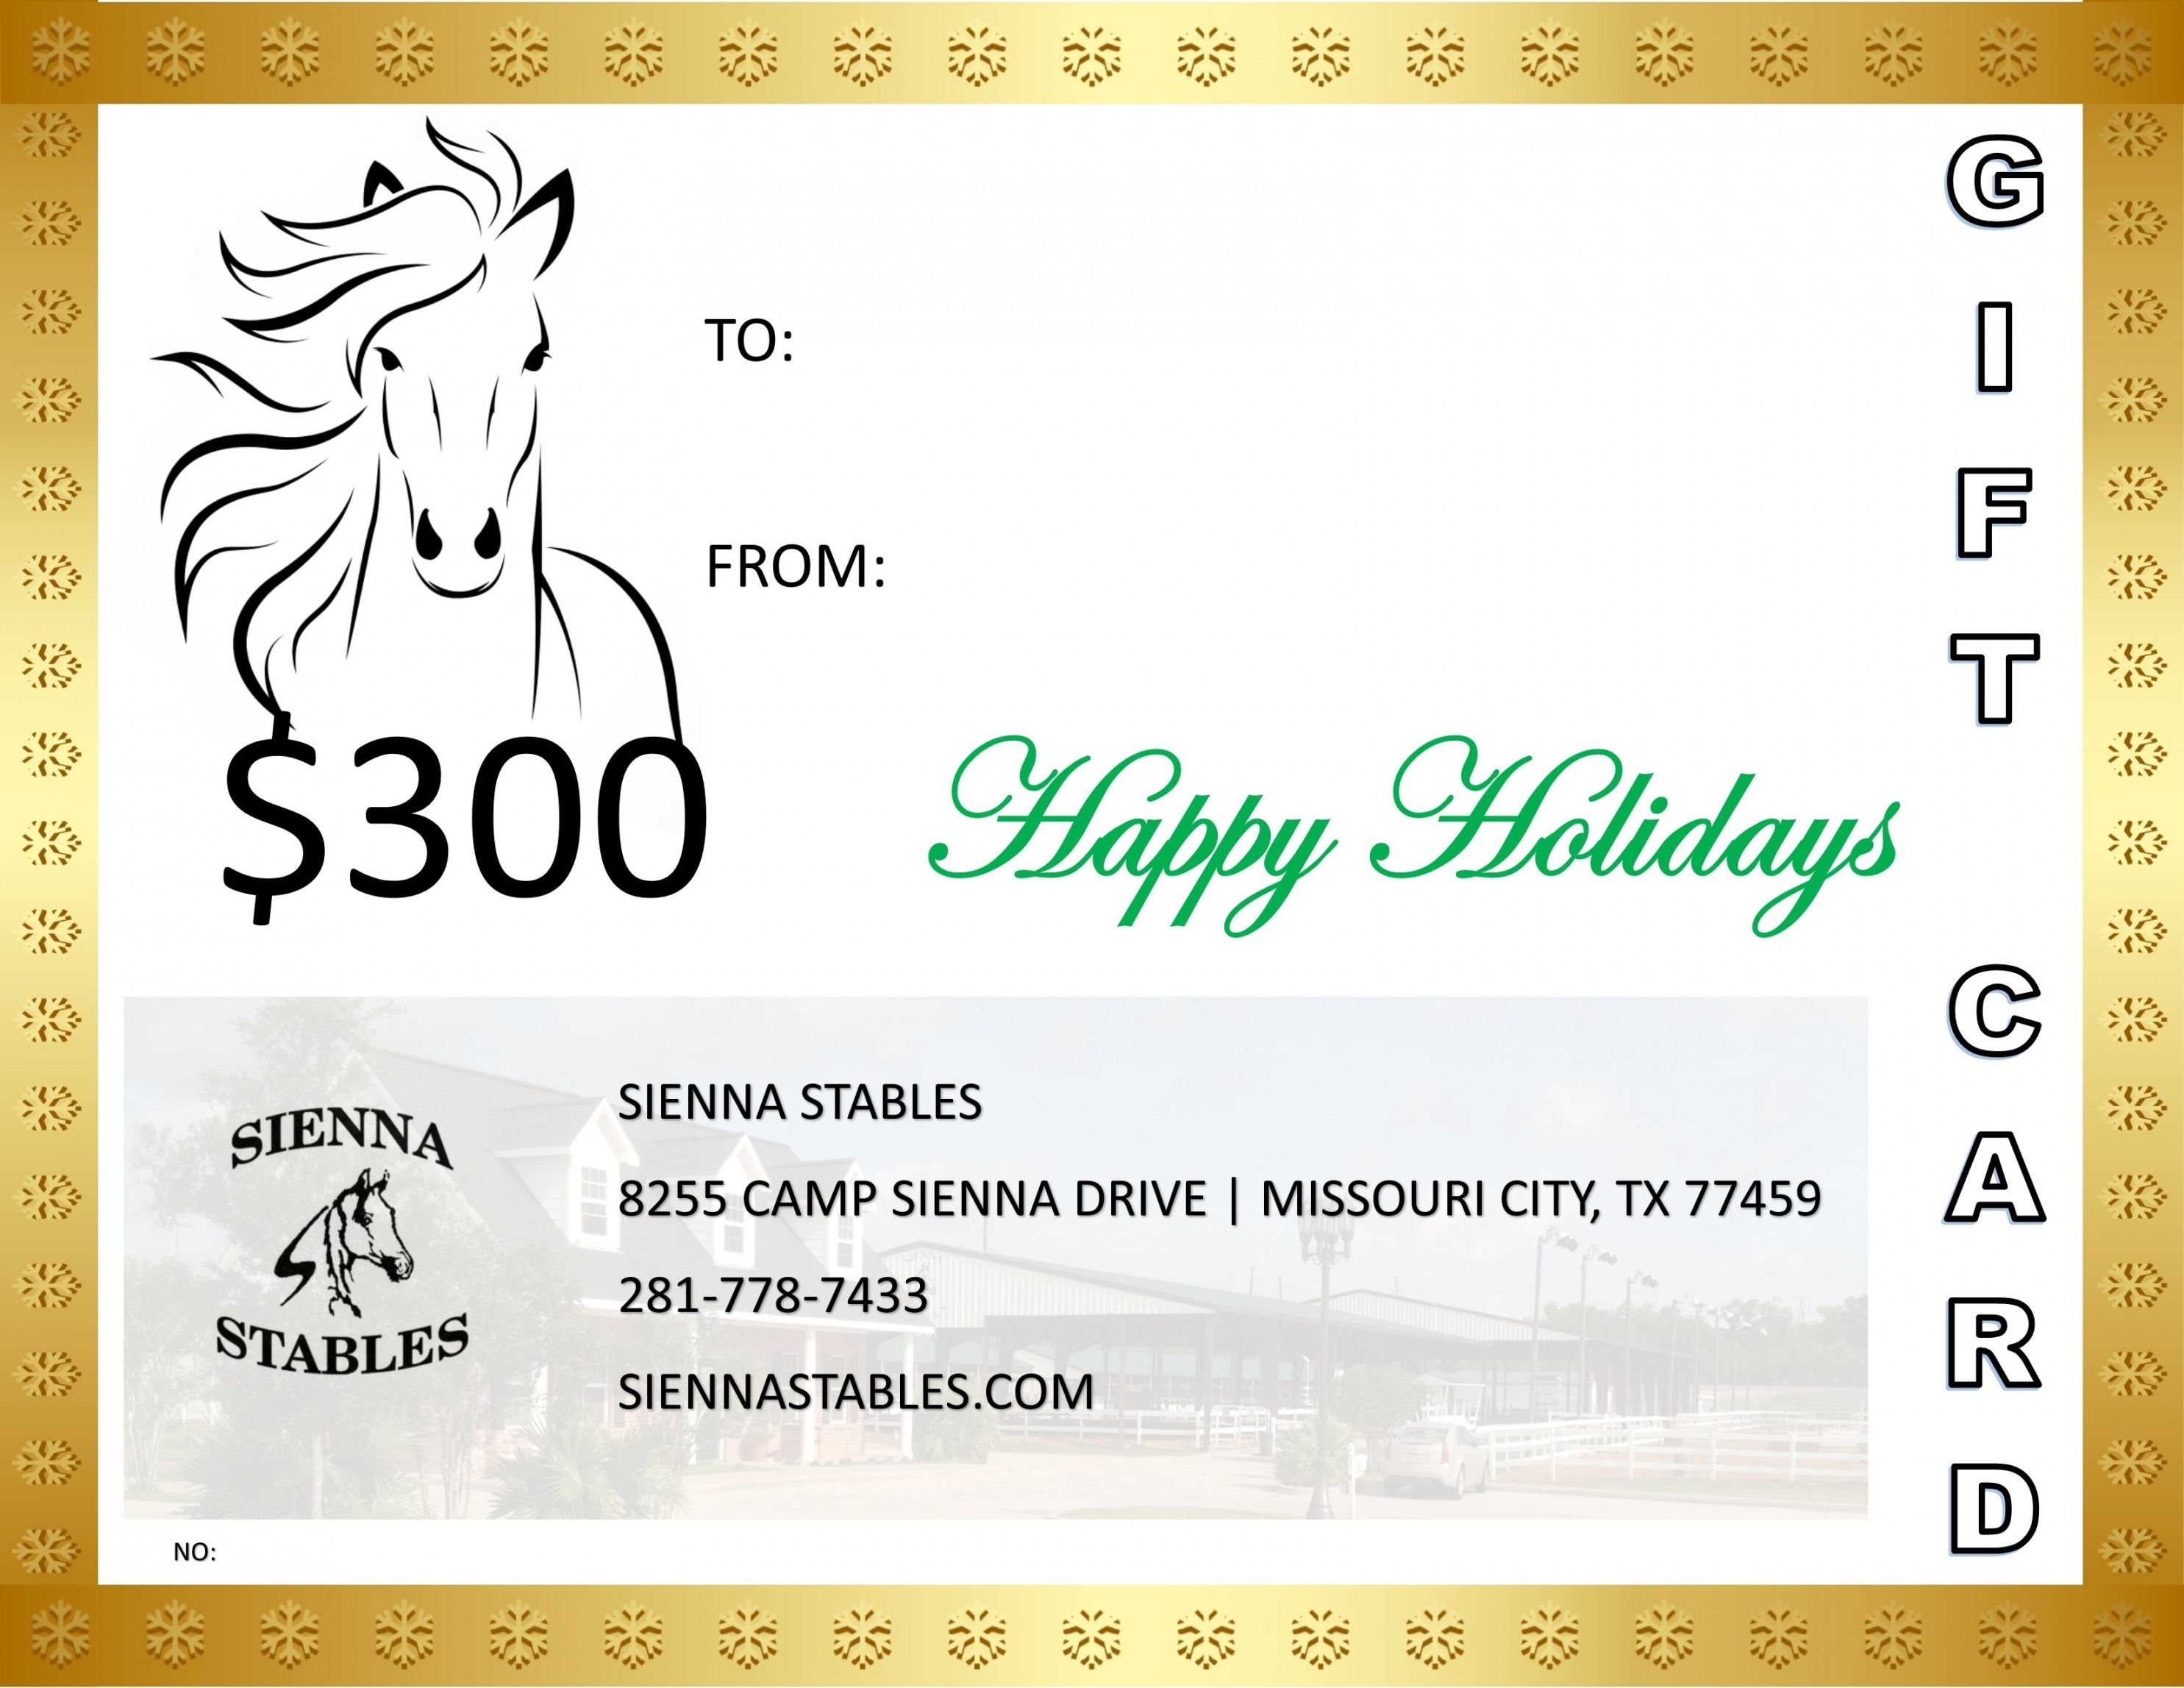 Get Our Image Of Horseback Riding Gift Certificate Template Gift Certificate Template Certificate Templates Christmas Gift Certificate Template Horseback riding lesson gift certificate template